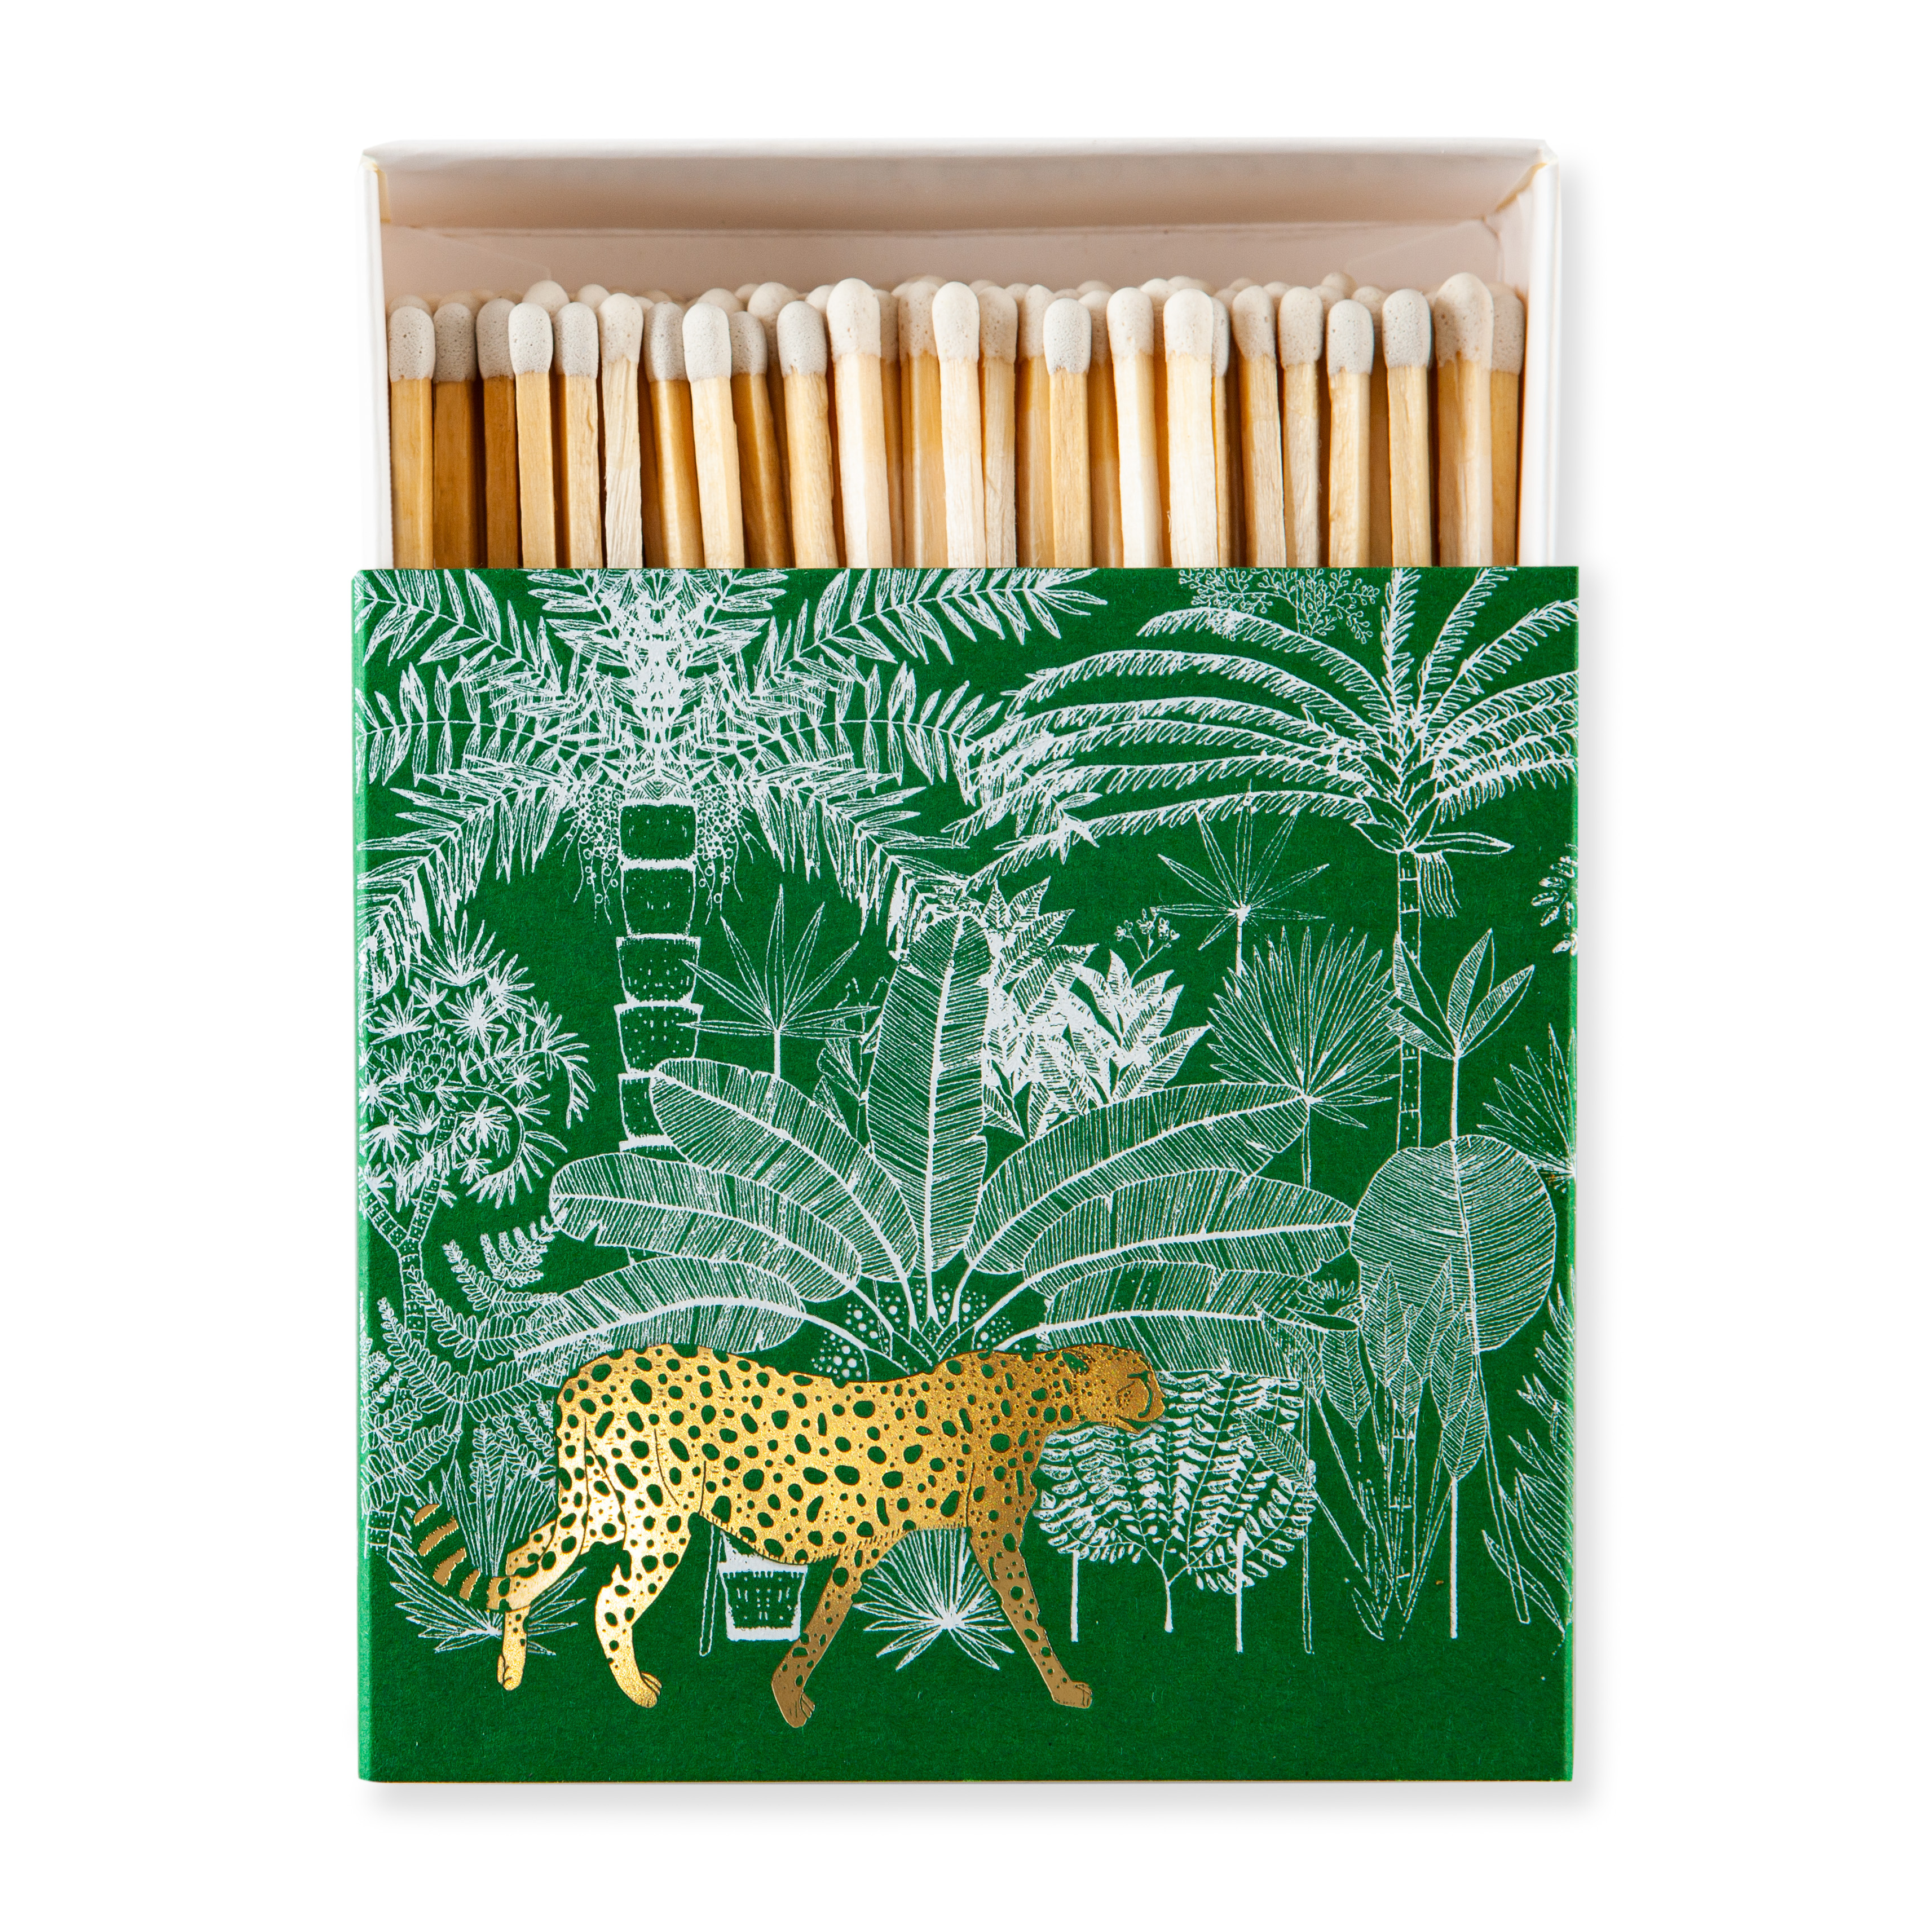 Cheetah Green Luxury boxed matches